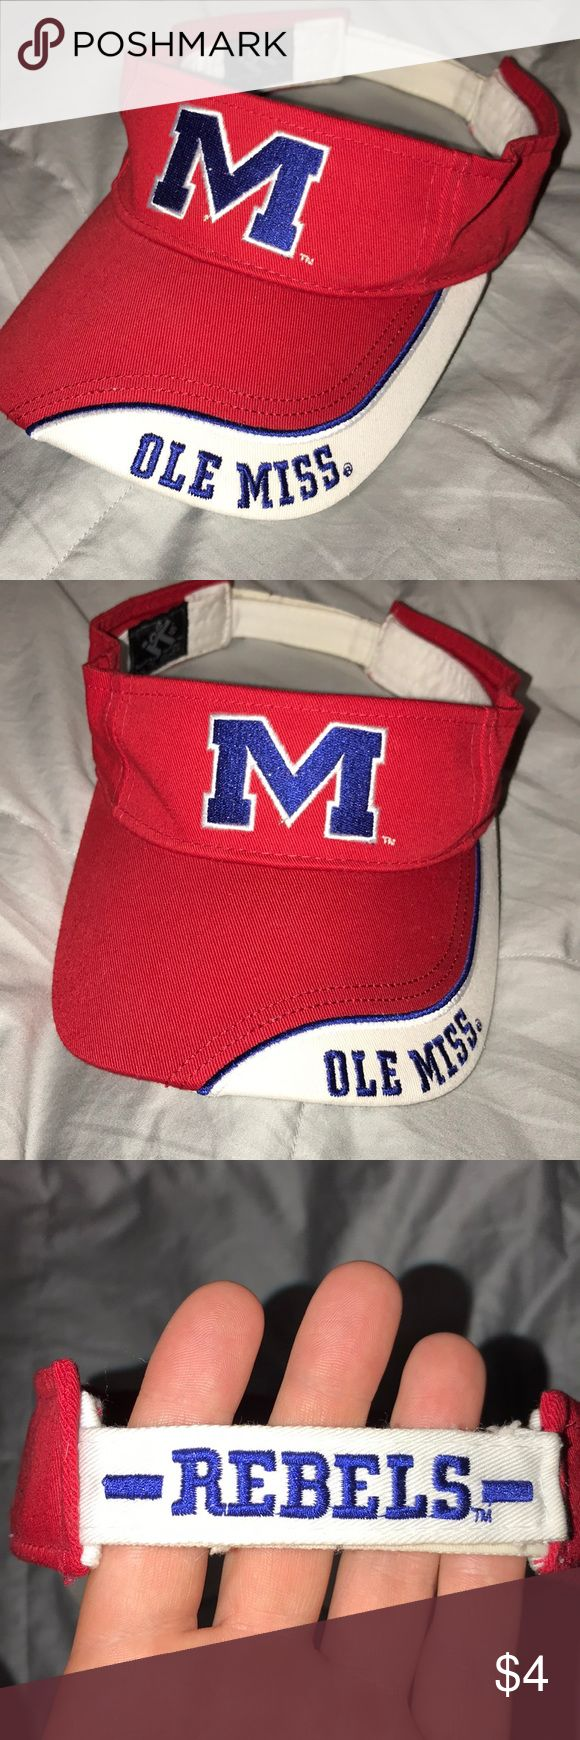 Ole Miss visor Ole Miss visor! Worn just a couple times, I've already washed so it's nice and clean. Just a little discolor on the one spot on the inside or the hat but other than that it's awesome sports wear Accessories Hats